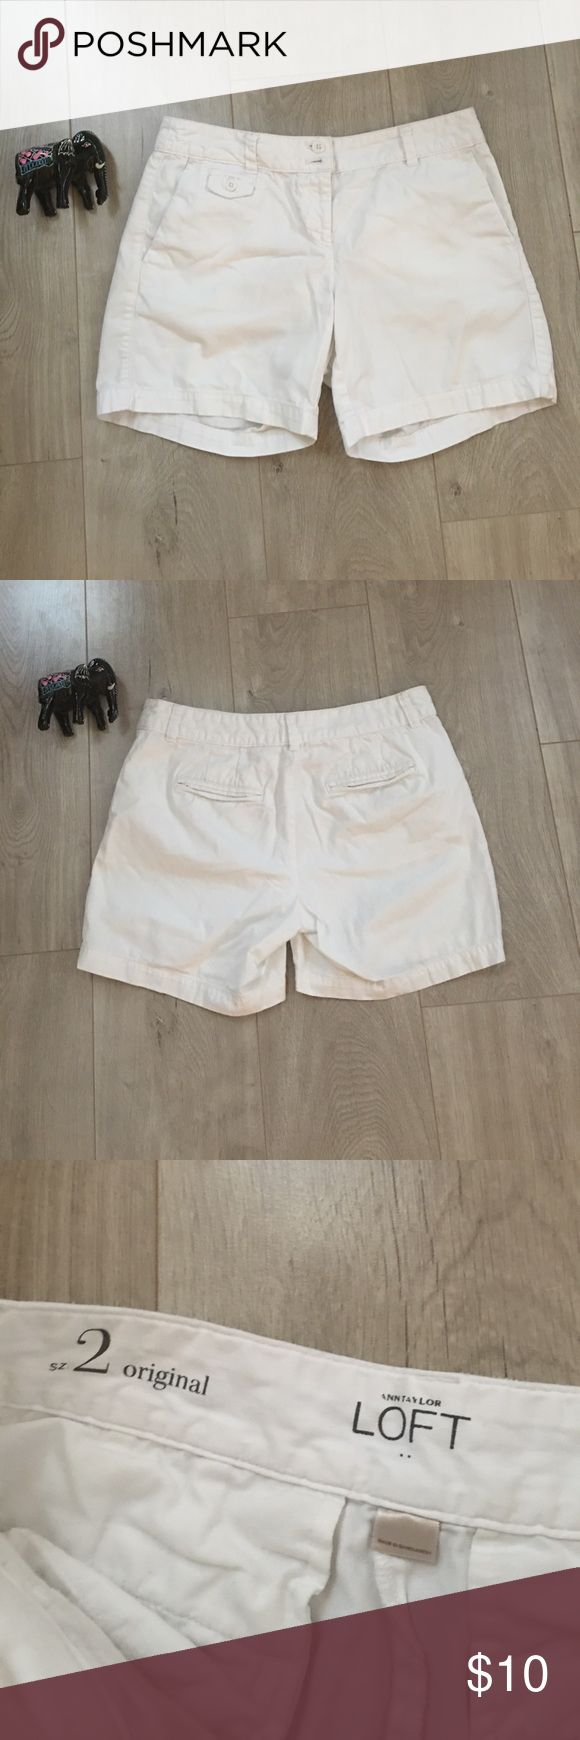 White shorts size 2 Anne Taylor Loft Women's white shorts size 2 Anne Taylor Loft Shorts